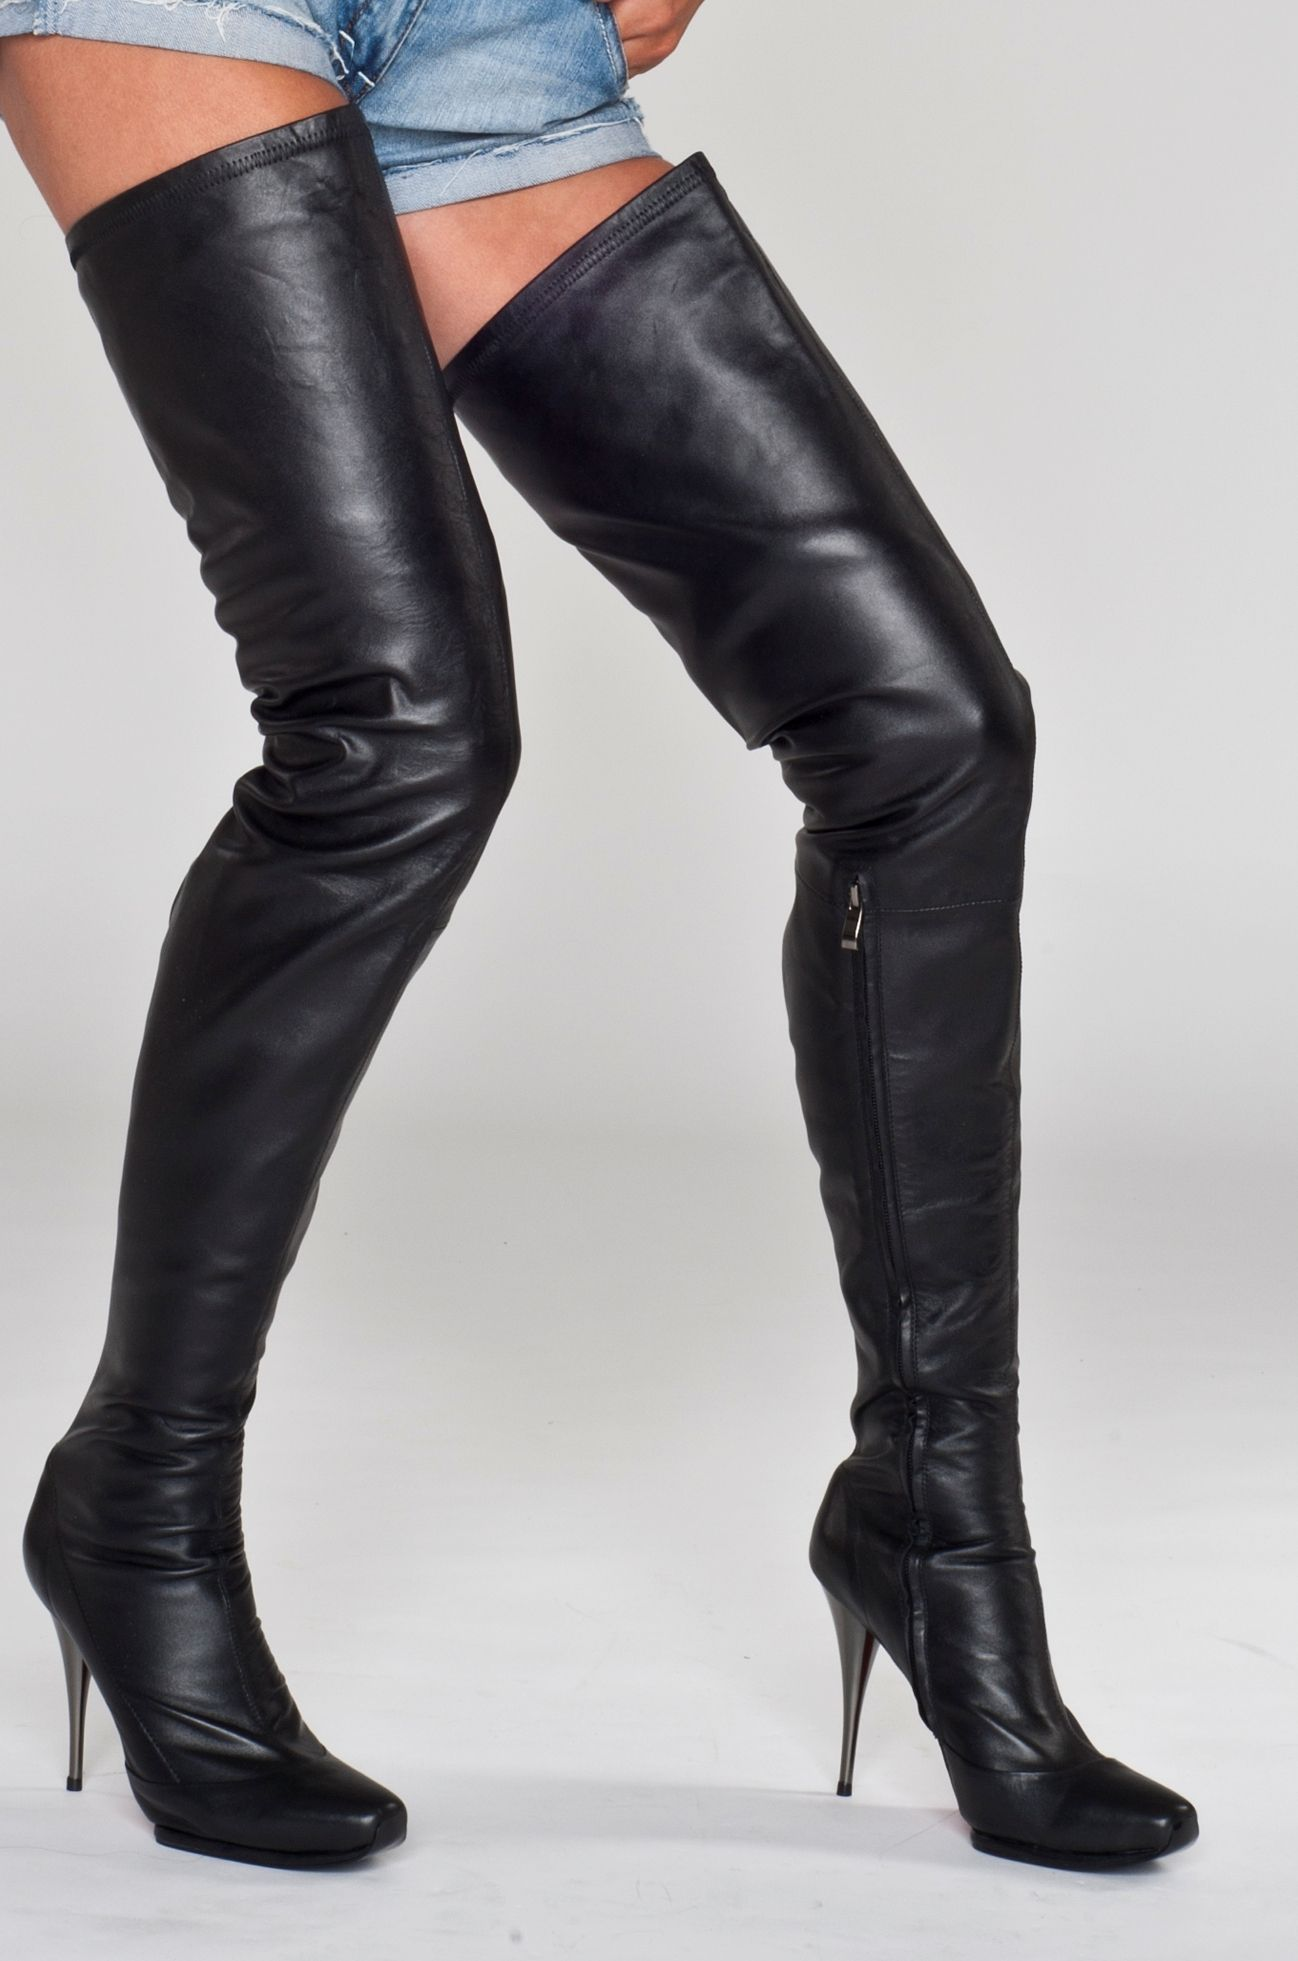 Stiletto Boots | My Style | Pinterest | More Stiletto boots ...